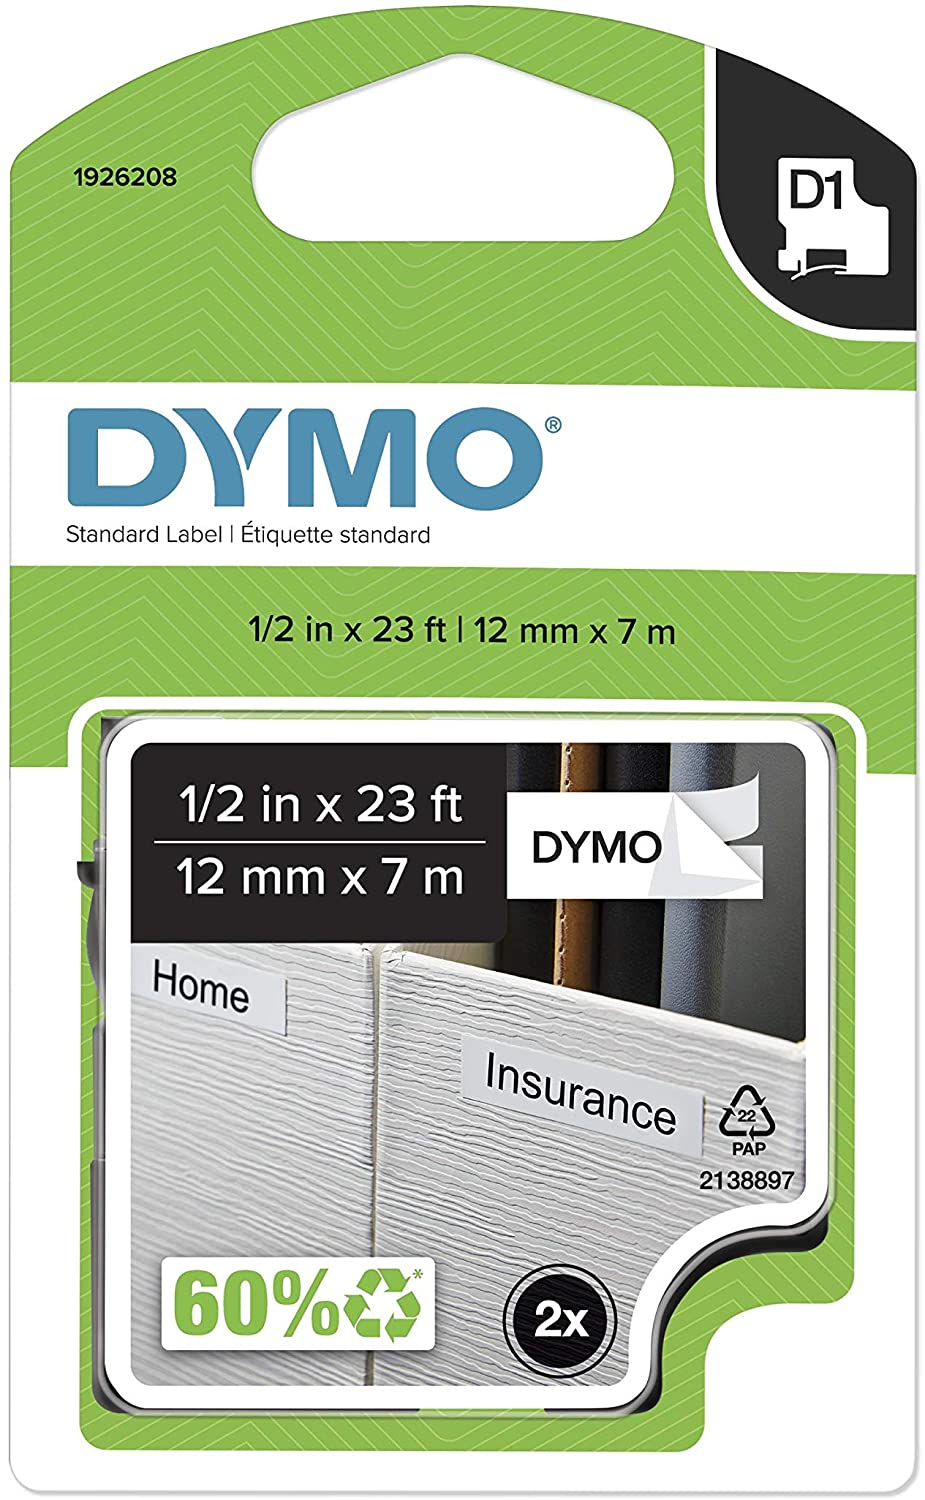 Soldering DYMO Standard Bargain D1 Self-Adhesive Polyester Label Tape Makers for